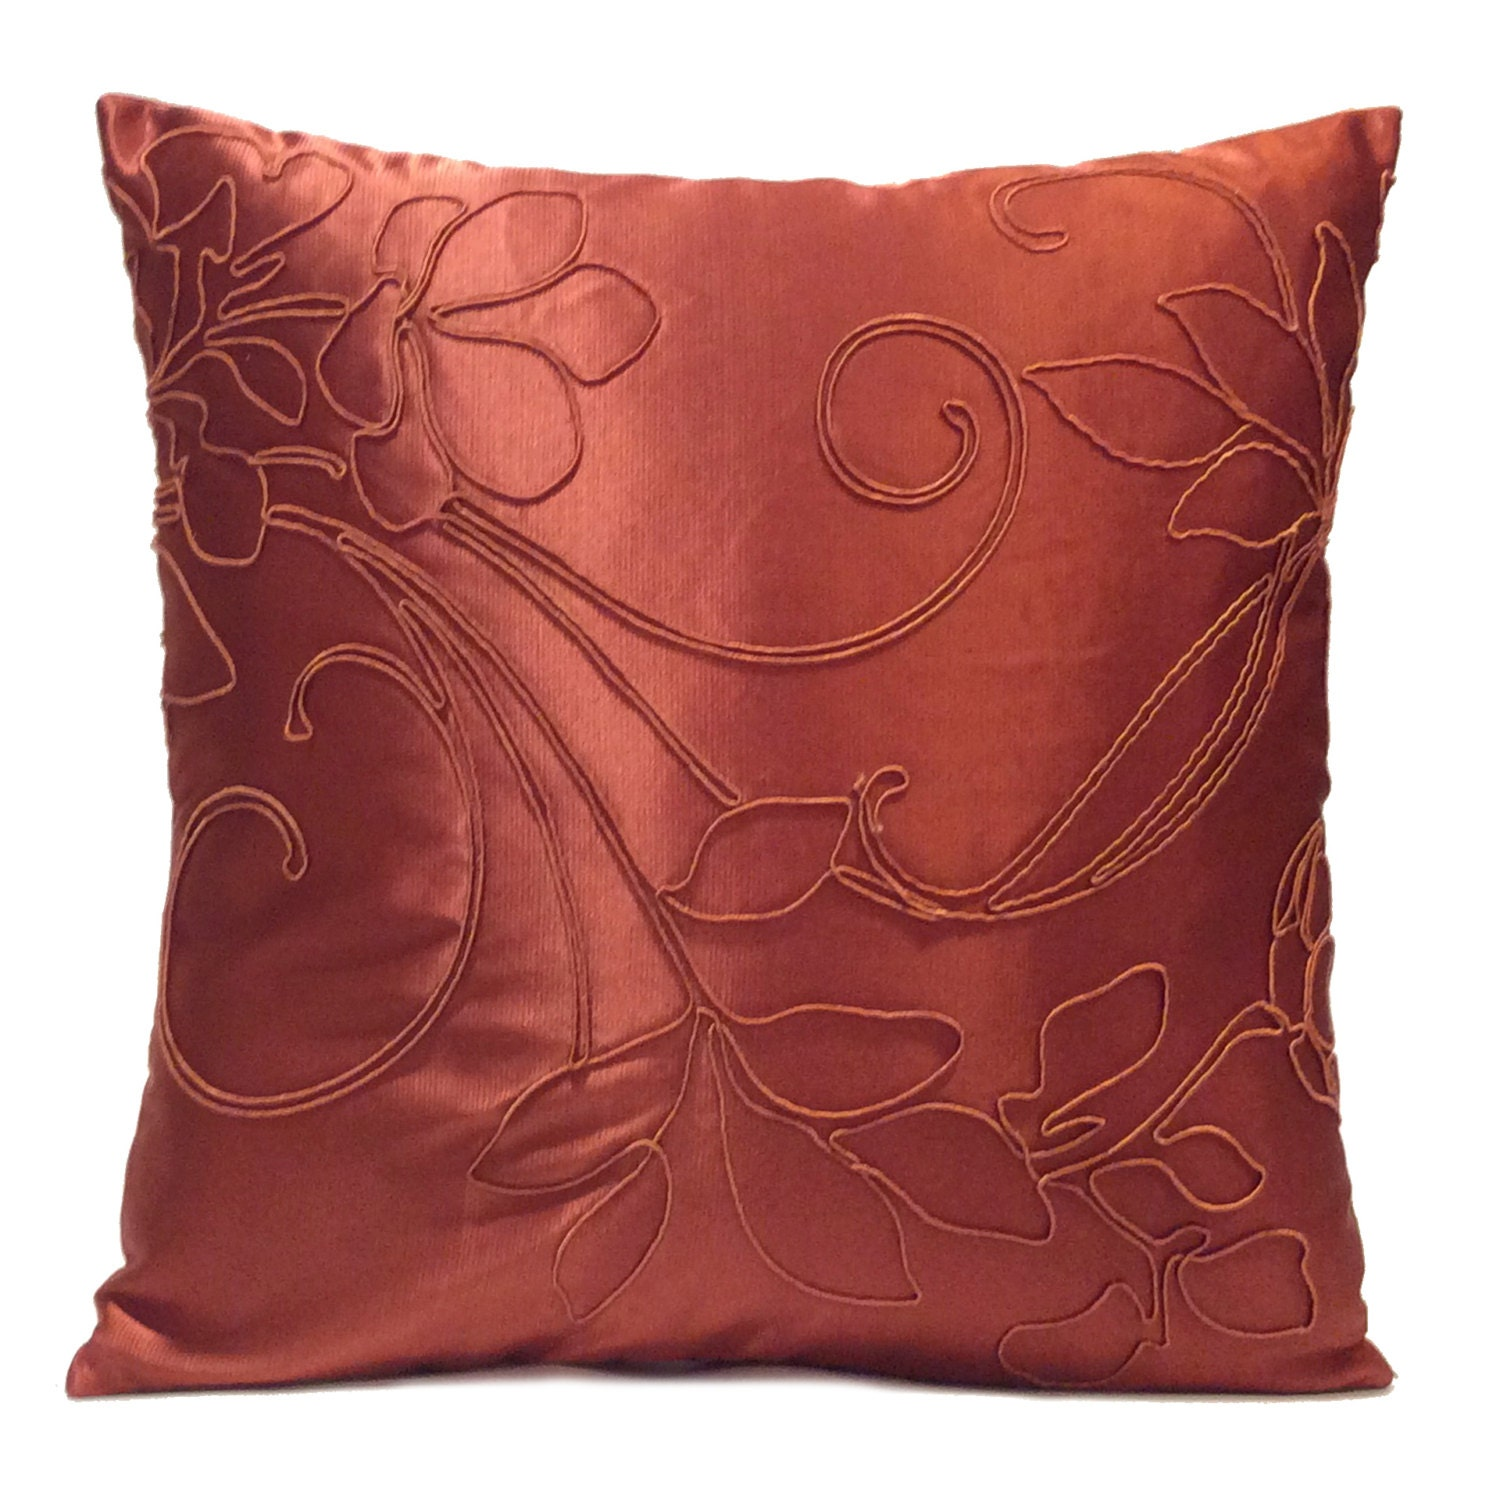 Copper Rust Pillow Throw Pillow Cover Decorative Pillow